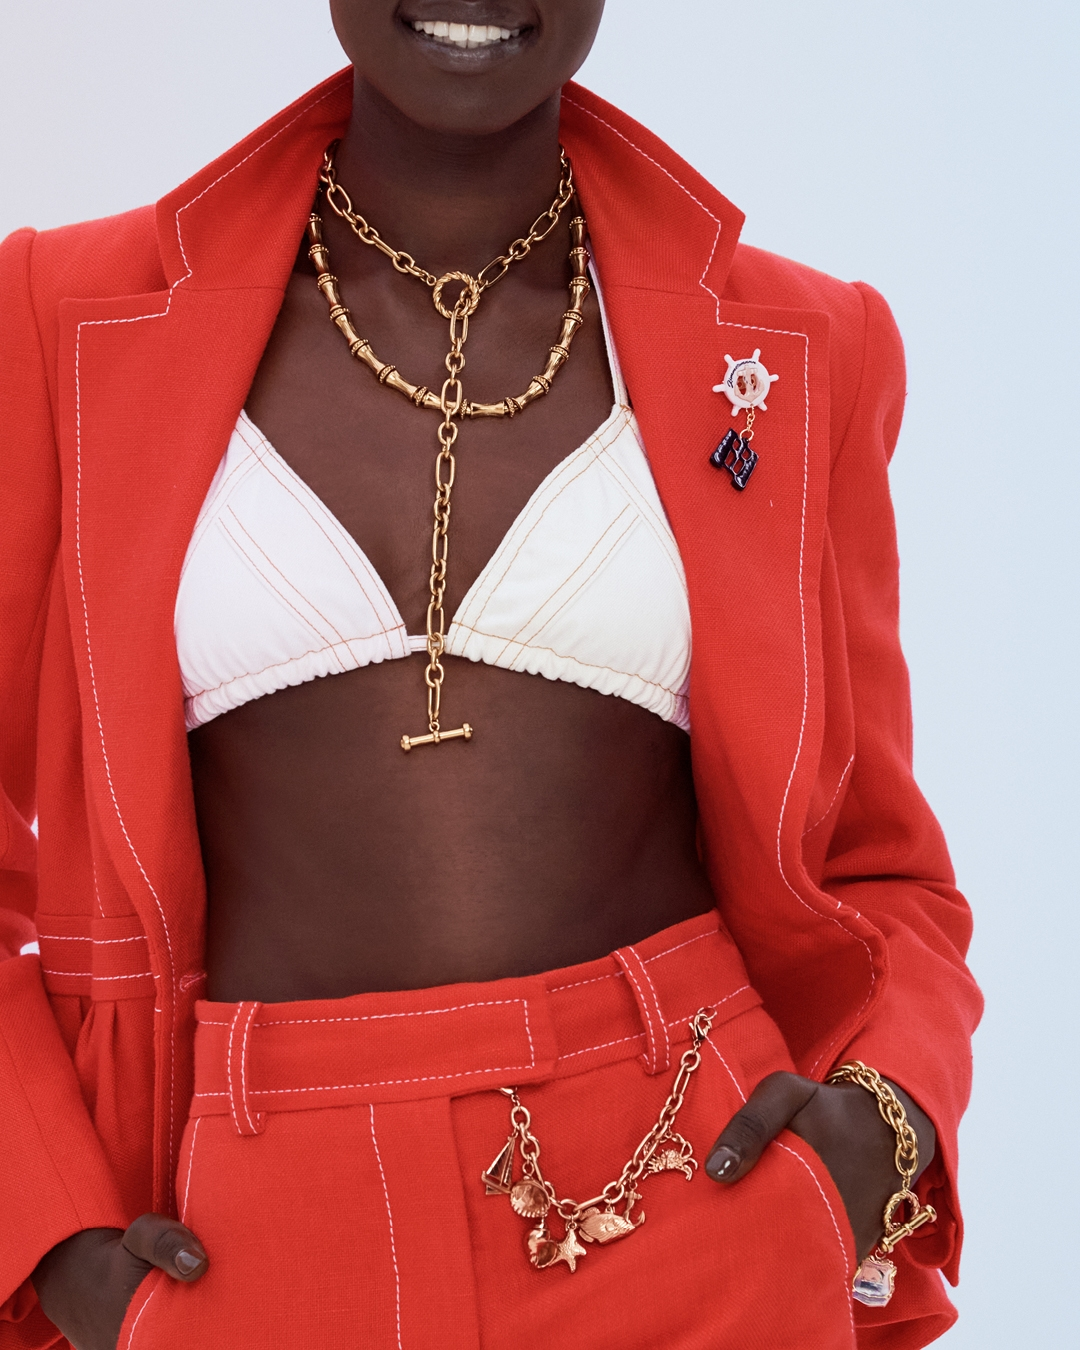 IN THE DETAIL: LOOK 6 RESORT READY TO WEAR 2022, THE POSTCARD